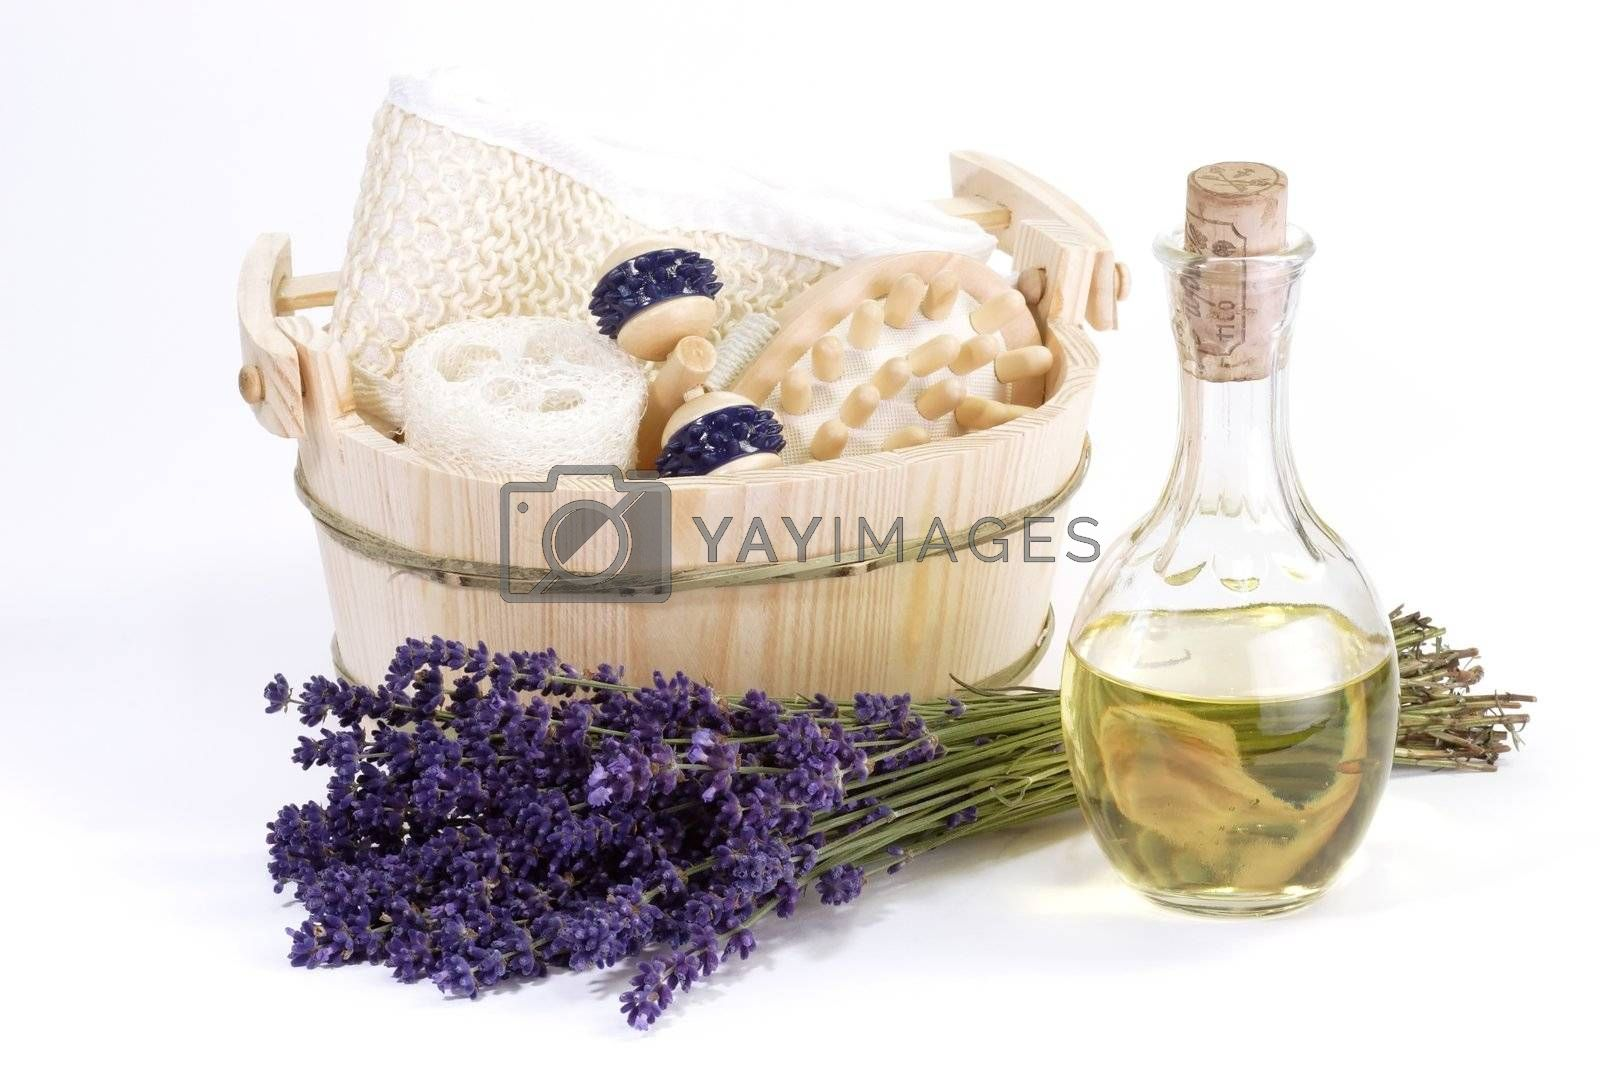 Massage supplies, bunch of lavender and bottle of oil on white background